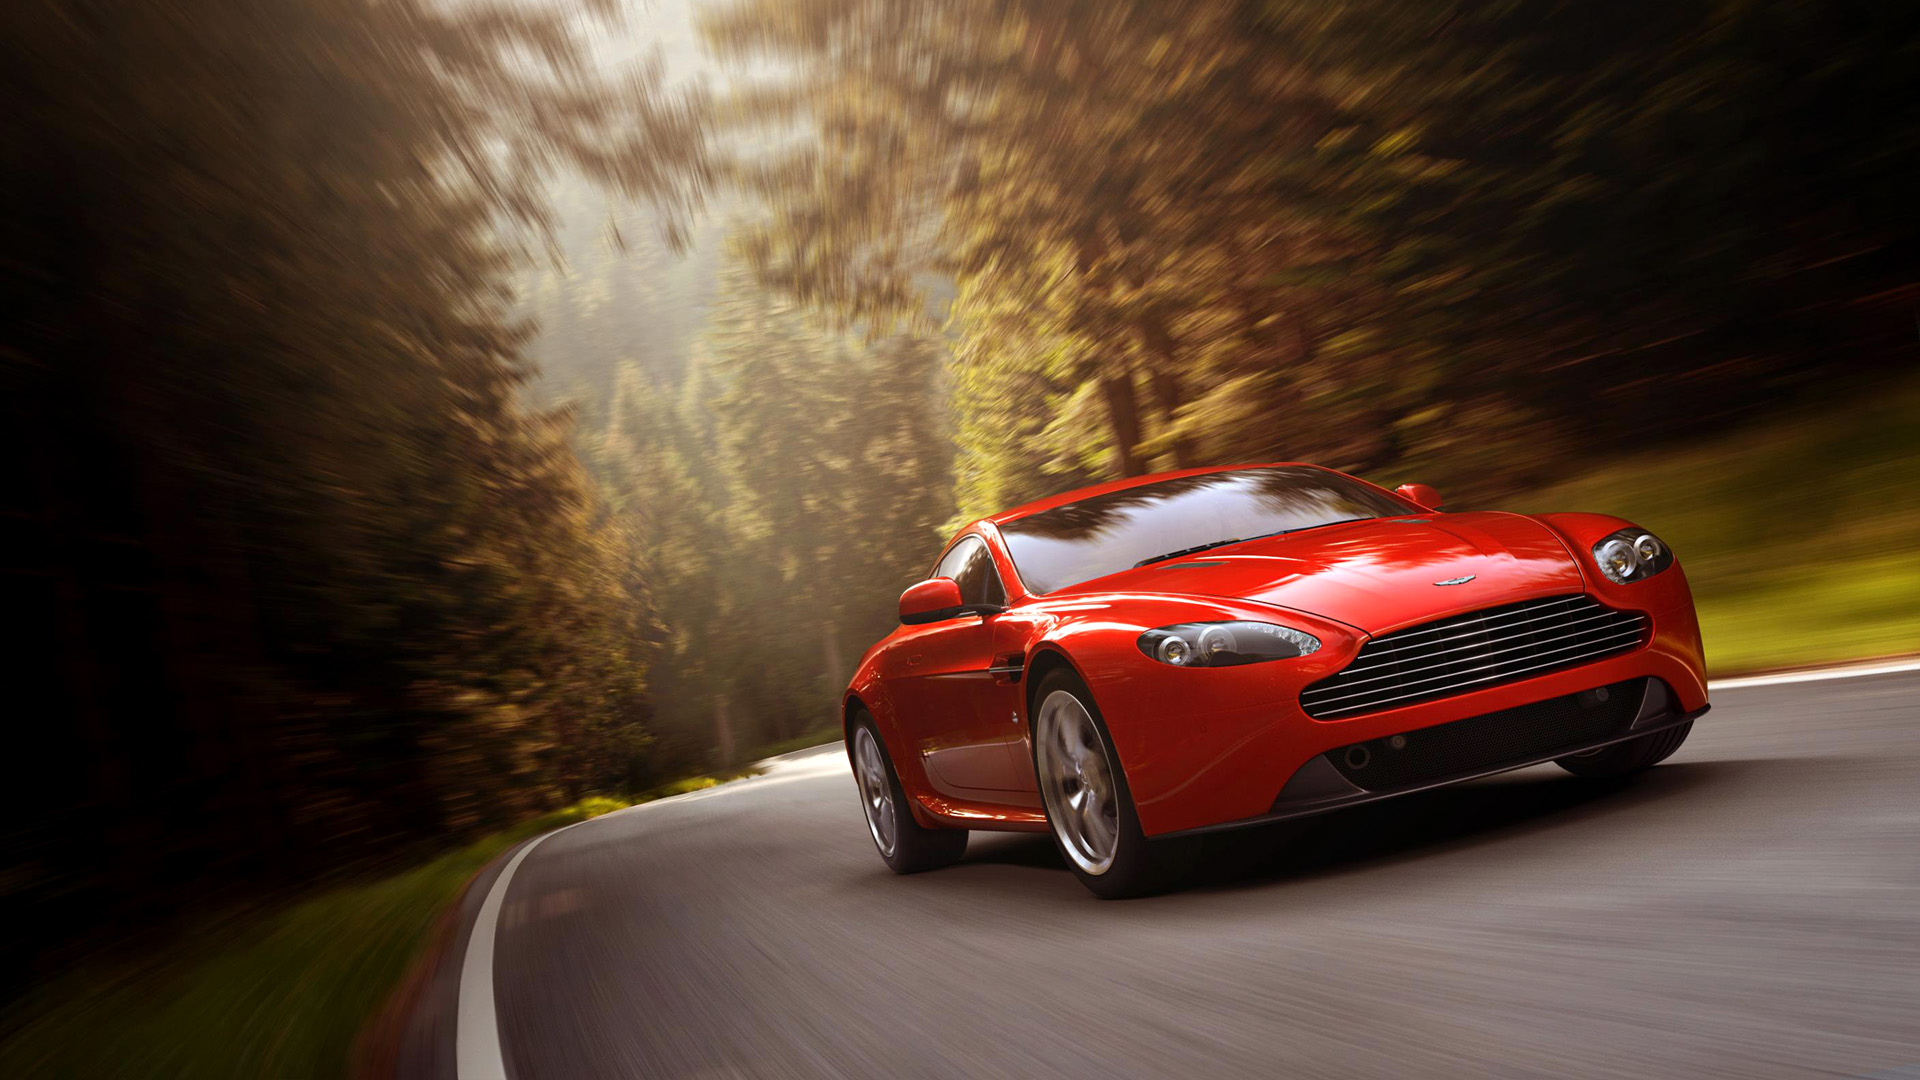 Captivating 2012 Aston Martin V8 Vantage V4 Car 1080p For Desktop